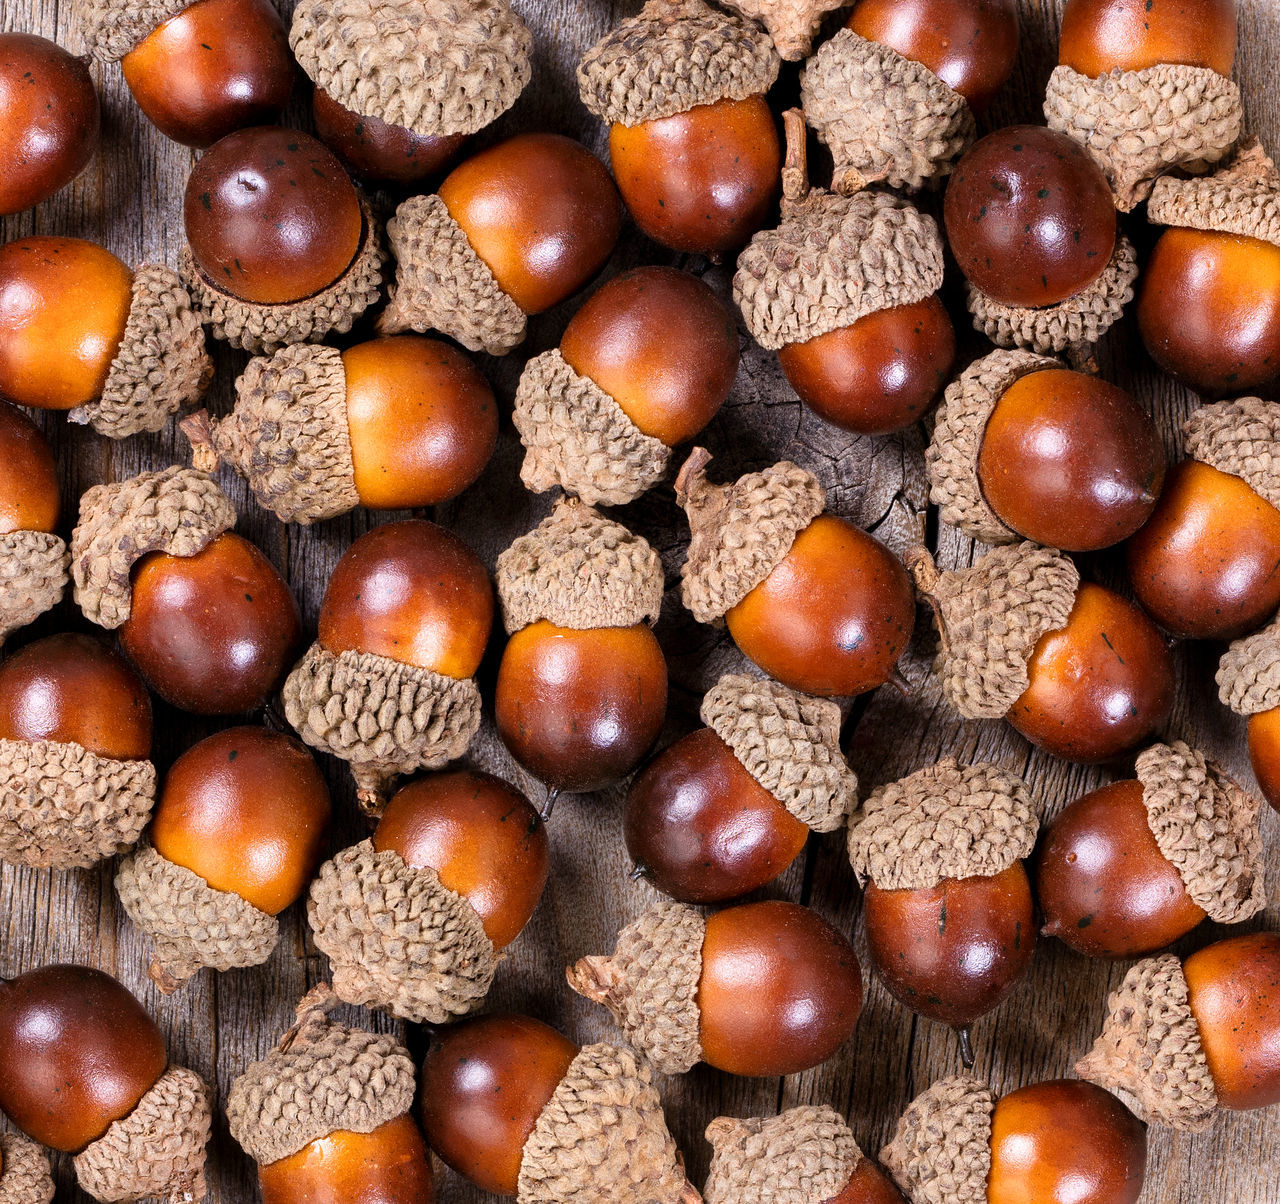 Filled frame of acorns Acorn Backgrounds Close-up Day Food Food And Drink Freshness Full Frame Healthy Eating Indoors  Large Group Of Objects No People Nut Ready-to-eat Seed